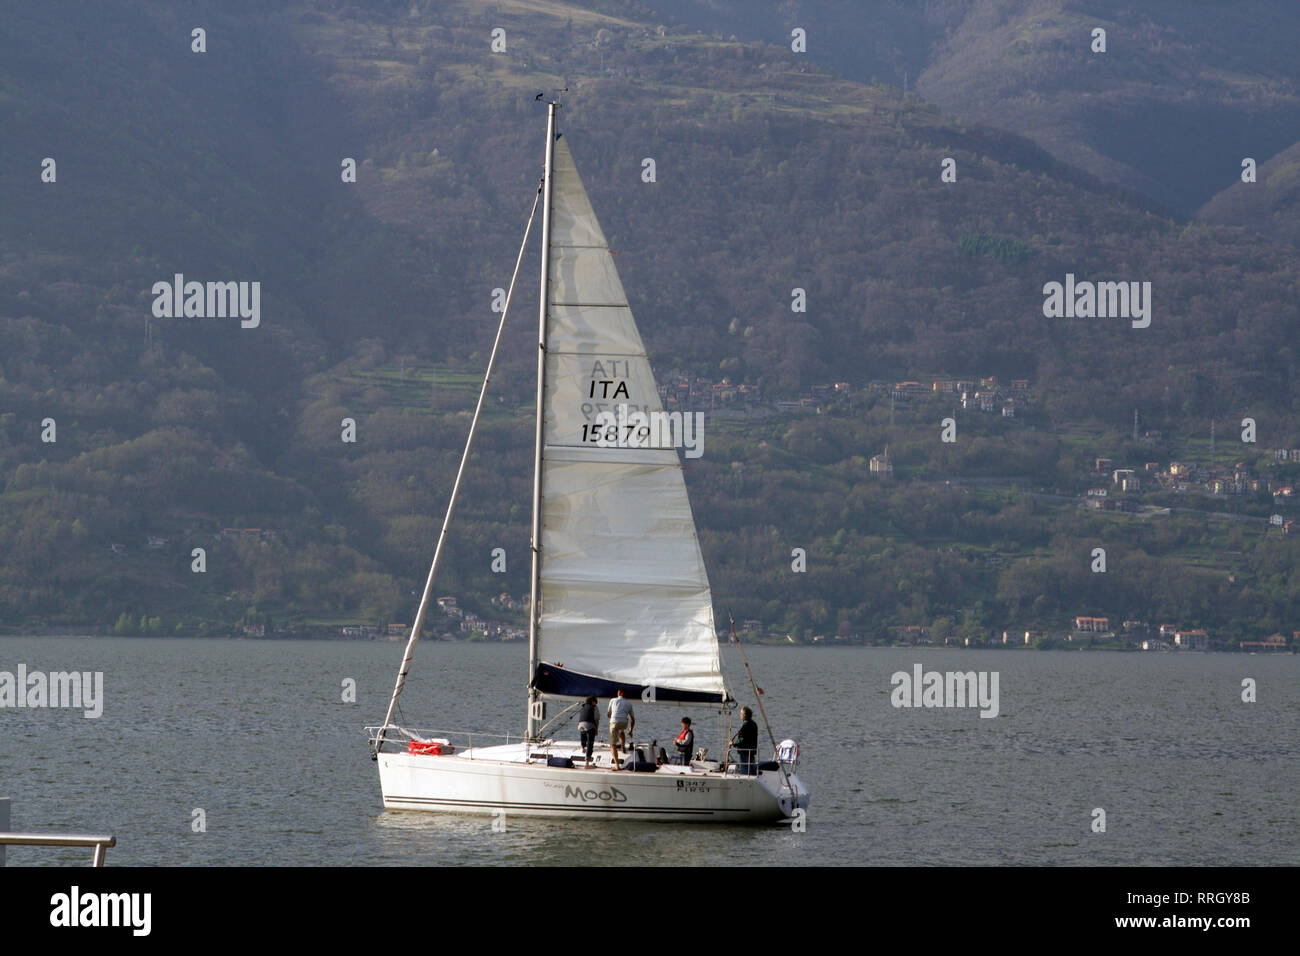 Tremezzo-Boat on Como lake - Stock Image